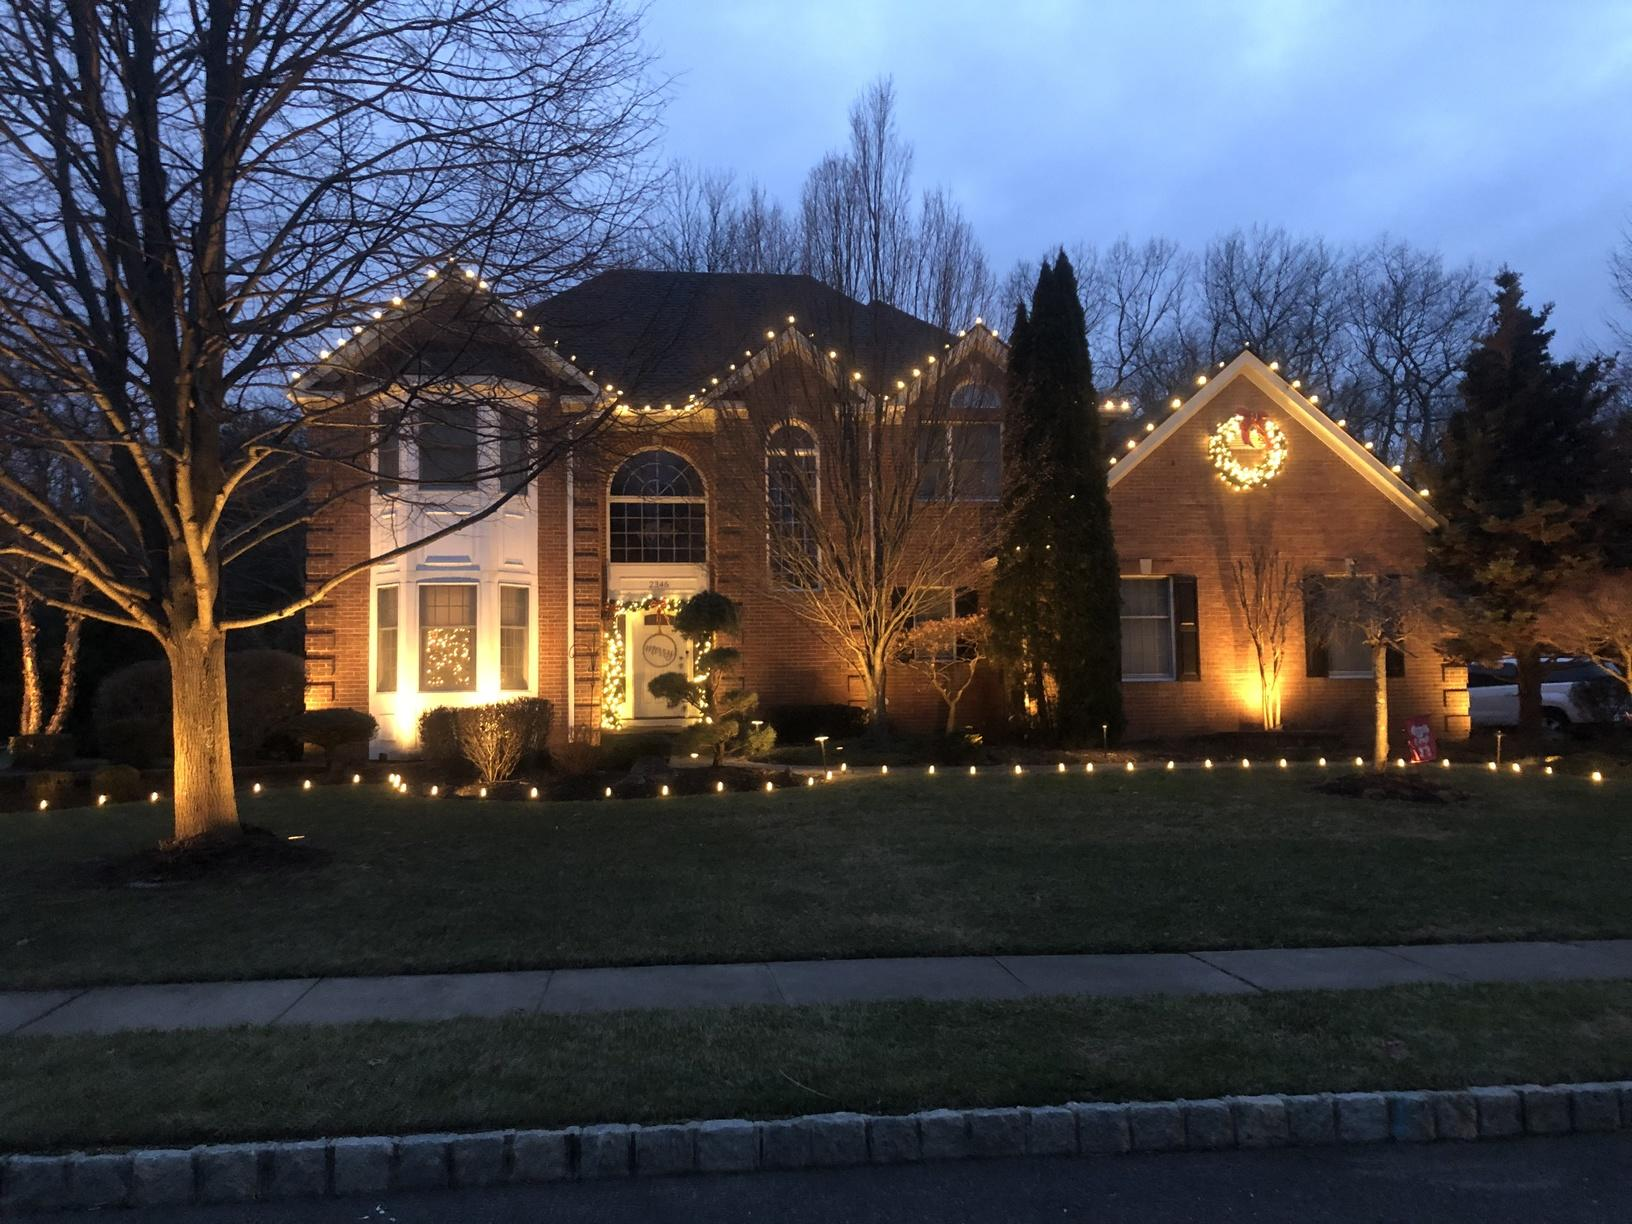 Christmas Lights Display in Manasquan, NJ - After Photo